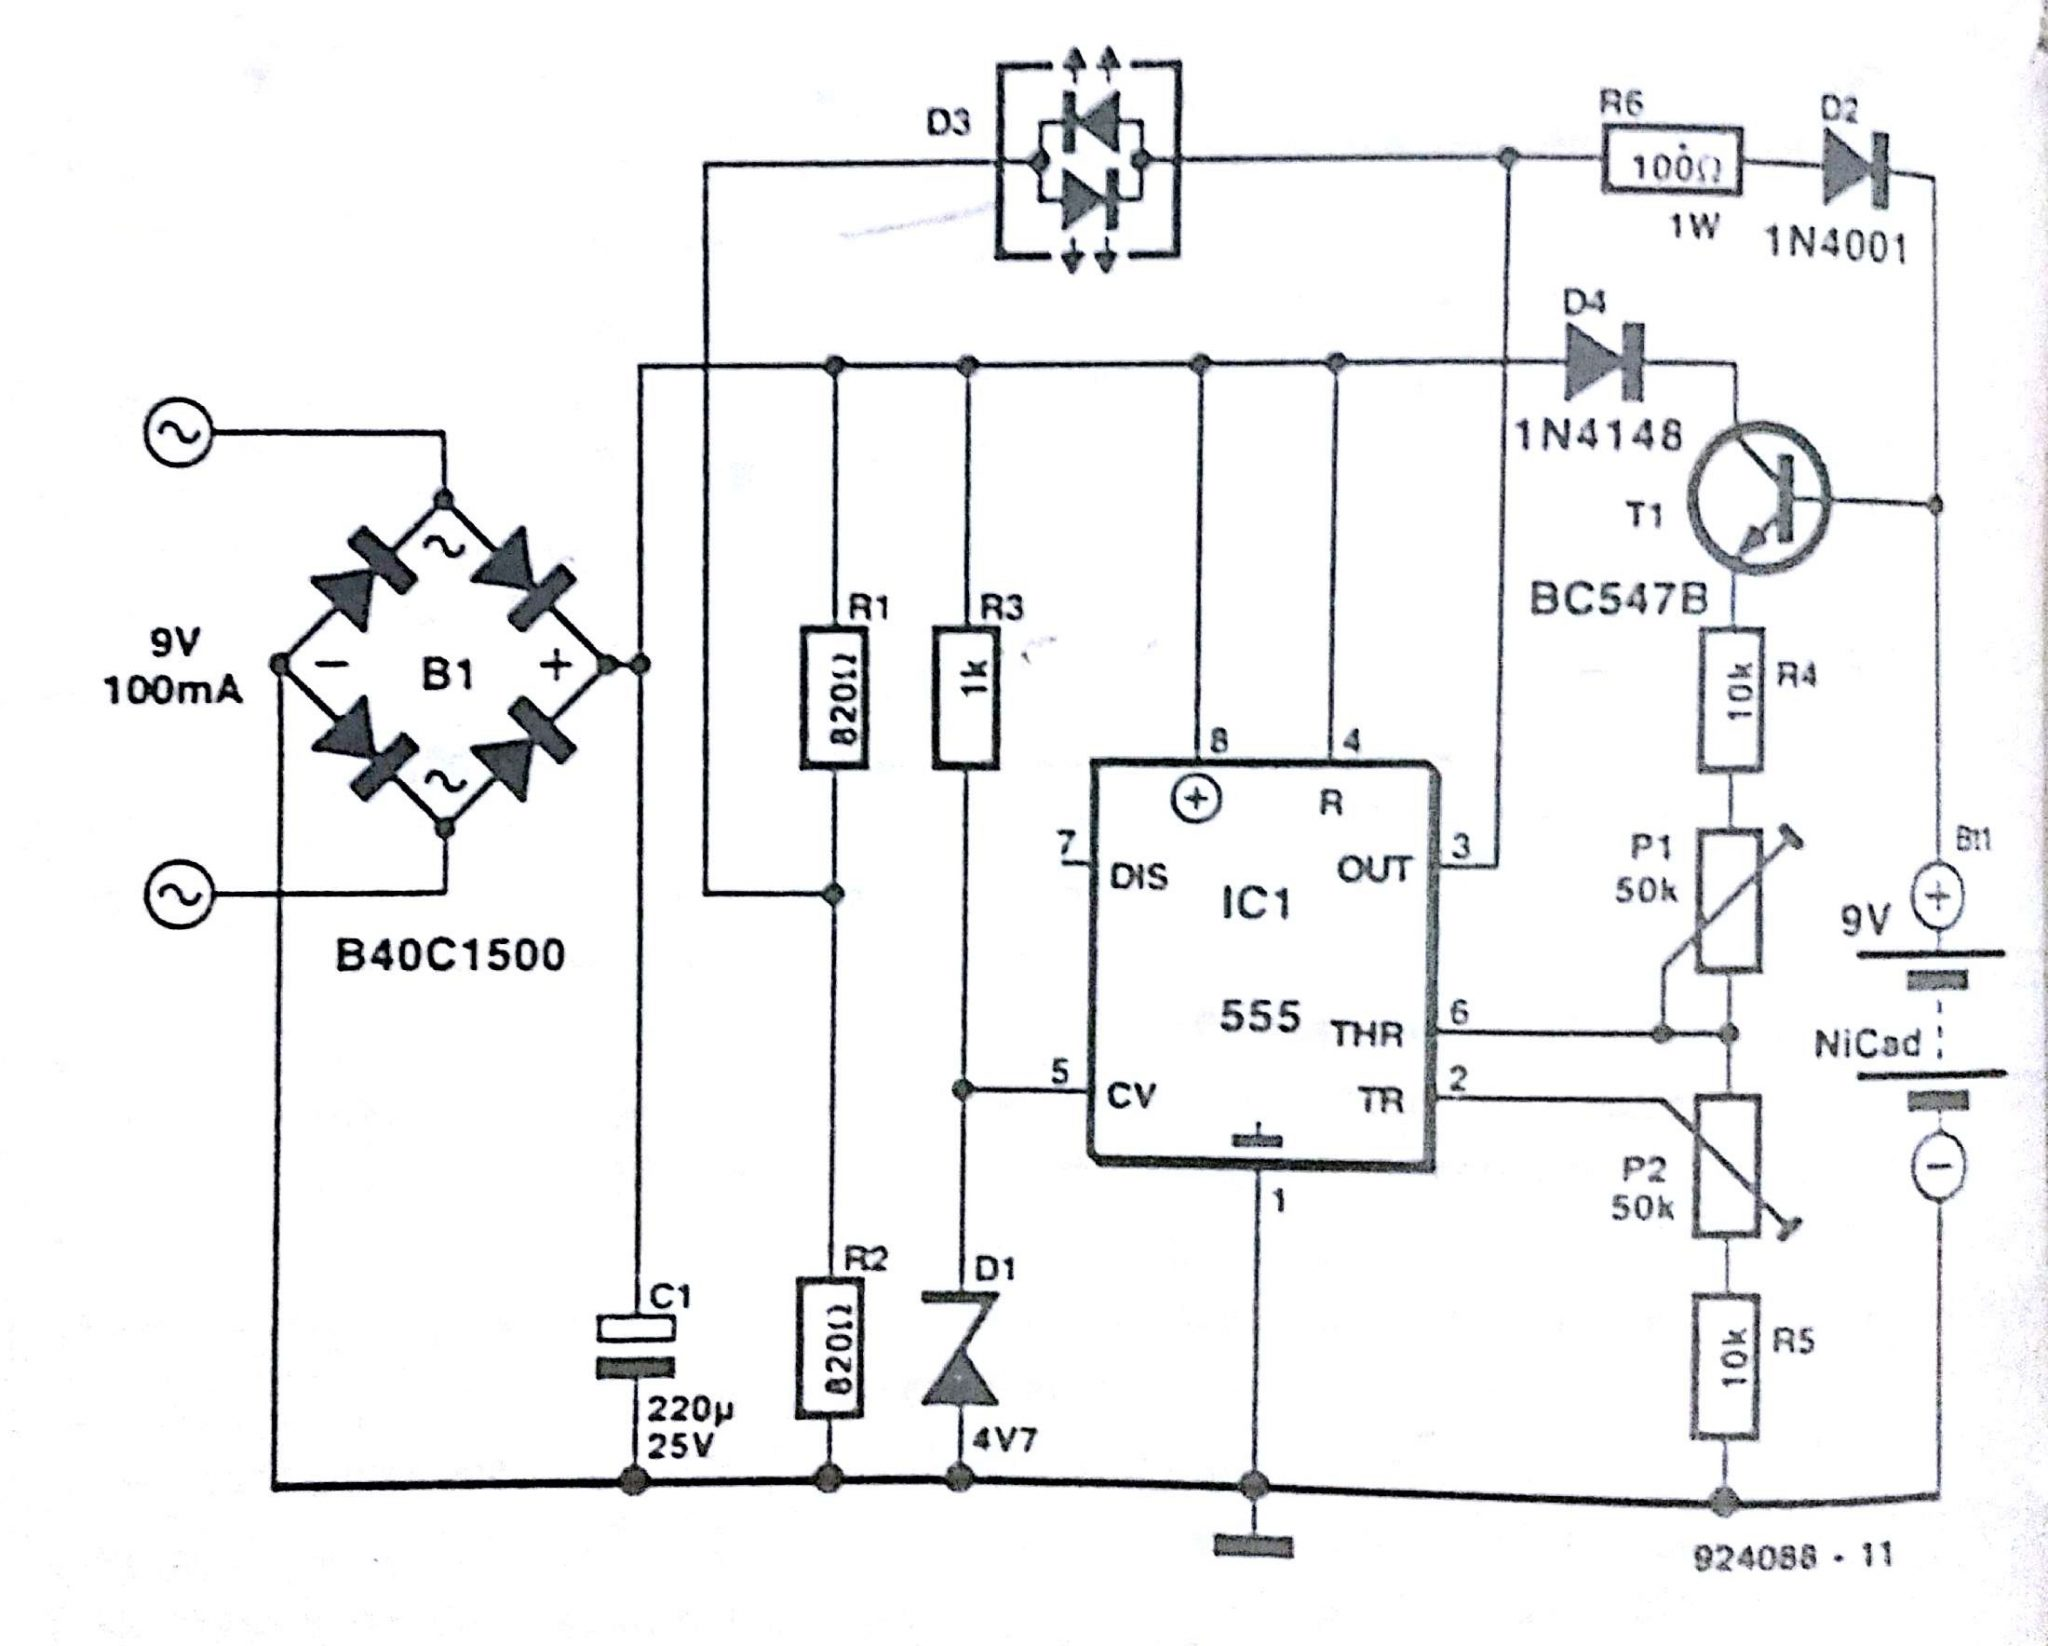 Automatic Nicd Battery Charger Circuit Diagram Lm317 Regulators Calculator Electronic Projects Circuits